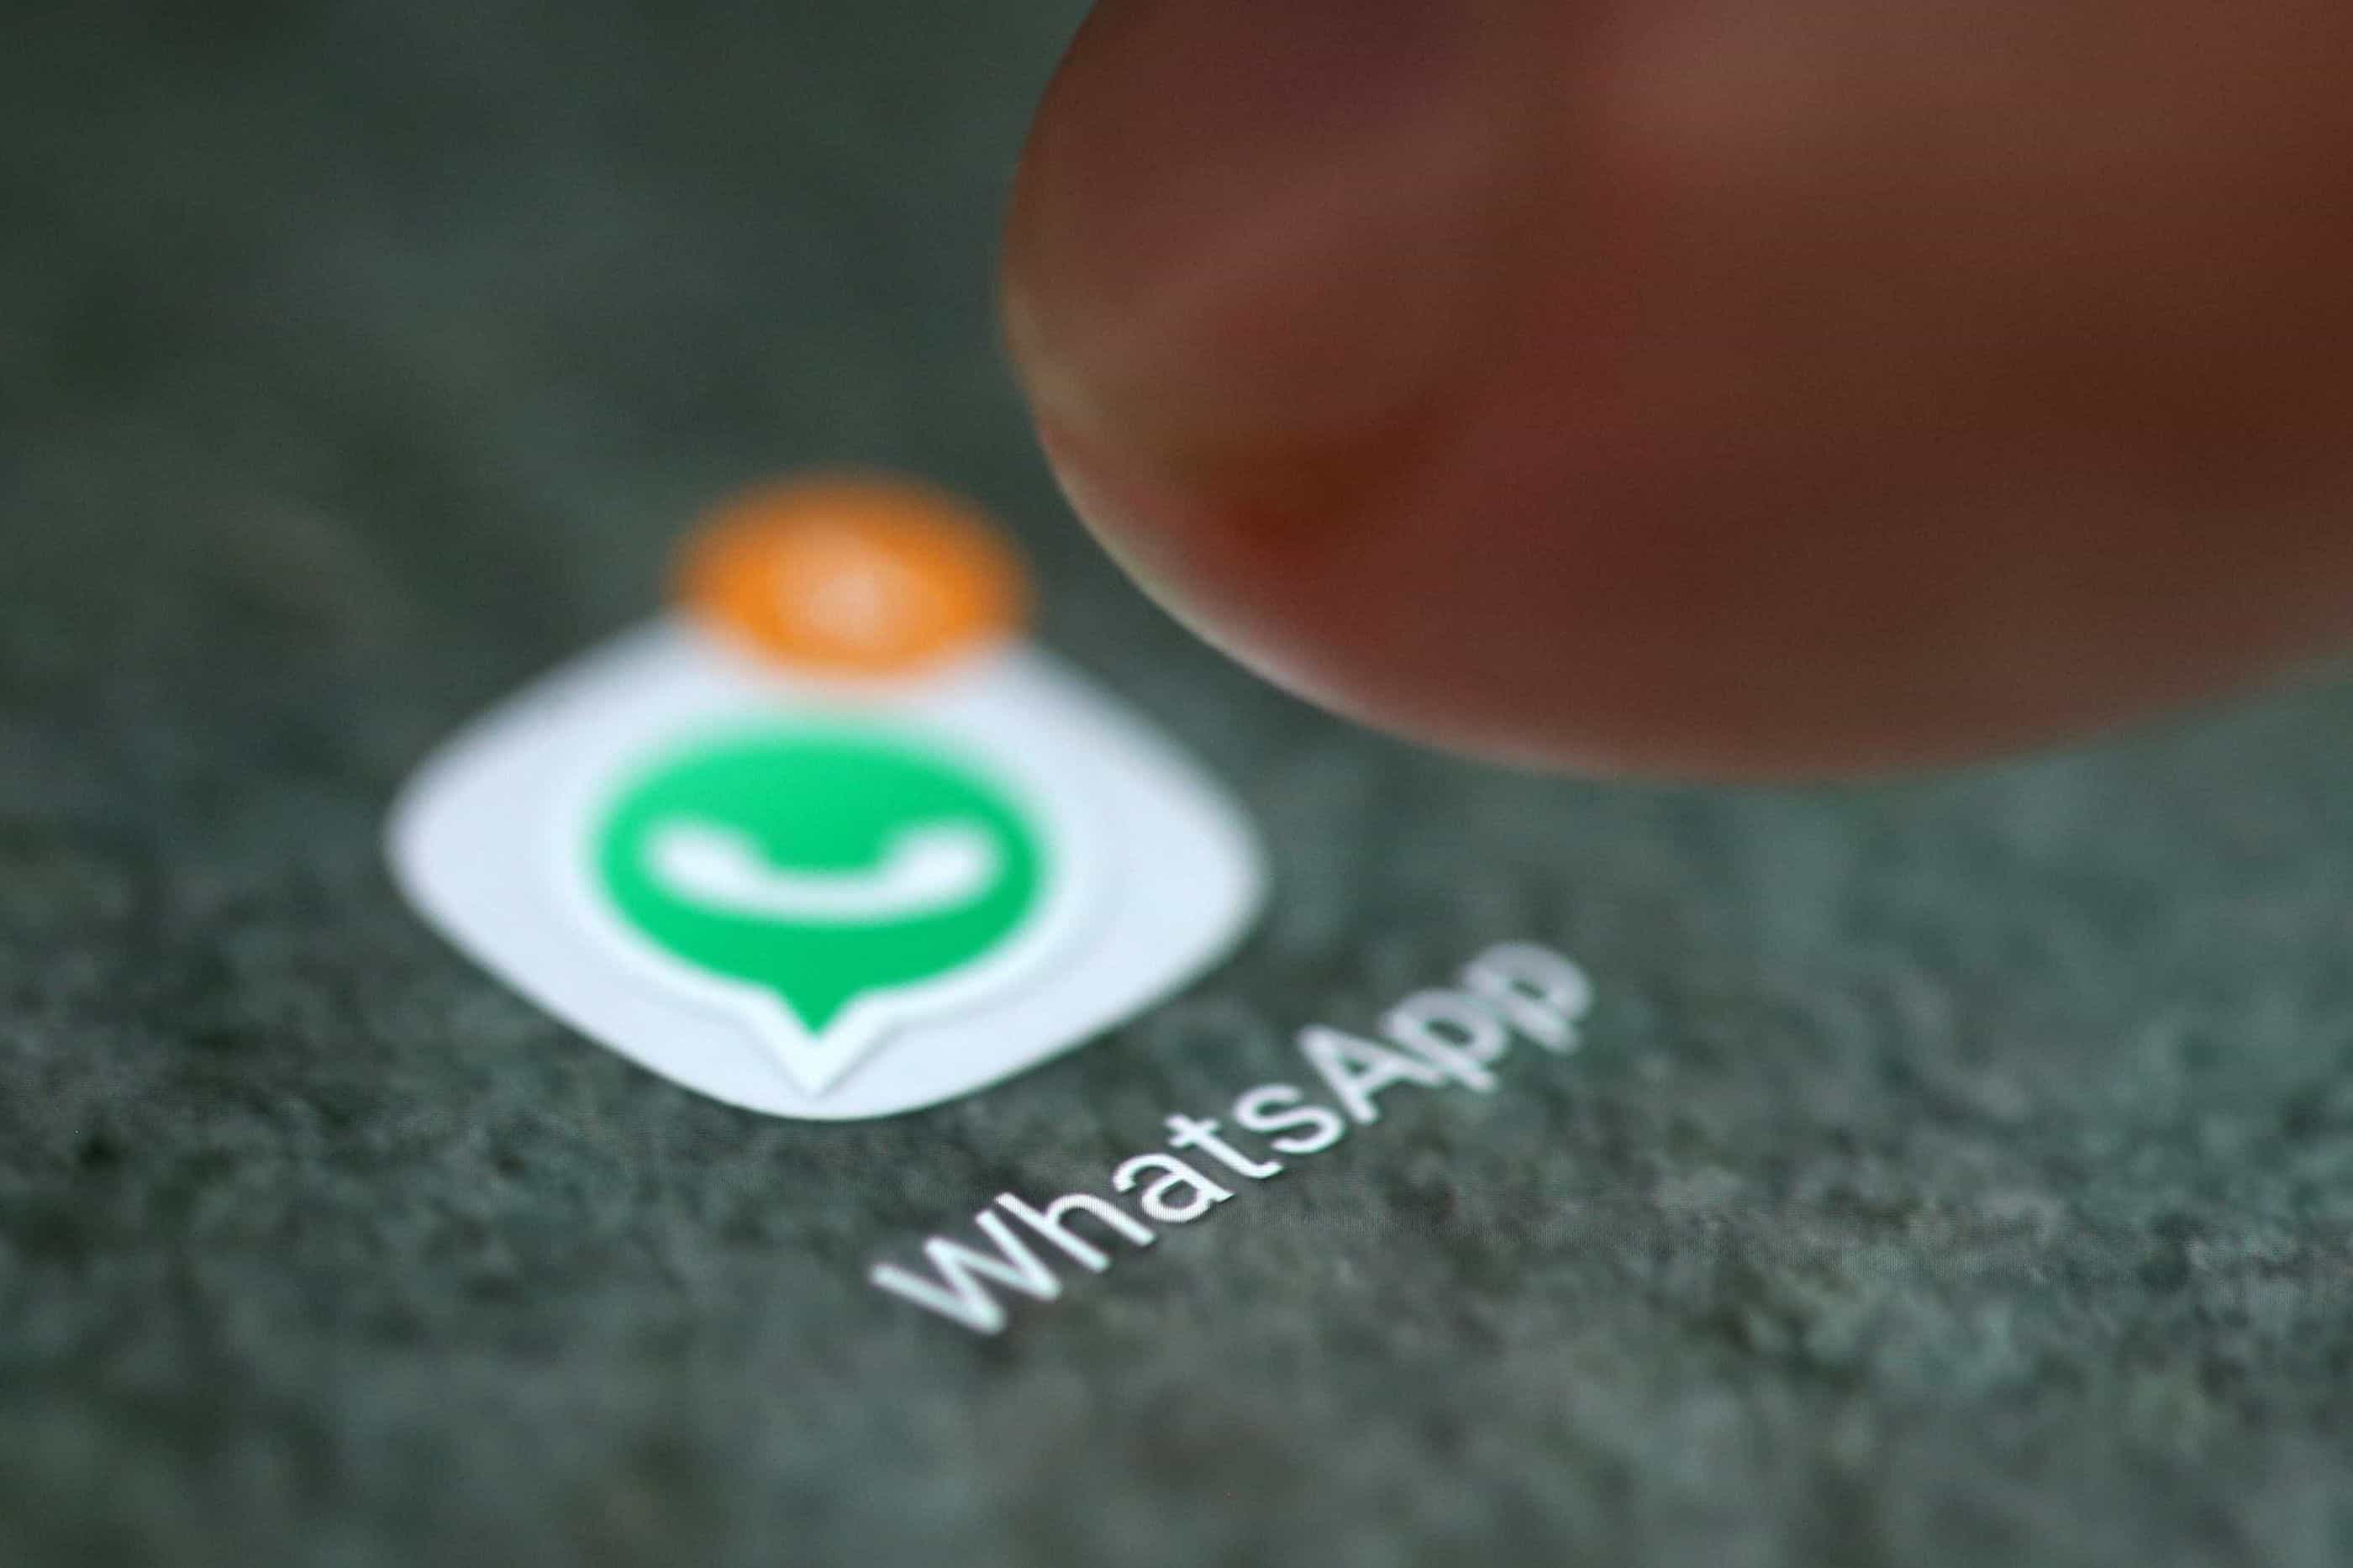 Vai passar a usar mais 'stickers' no WhatsApp